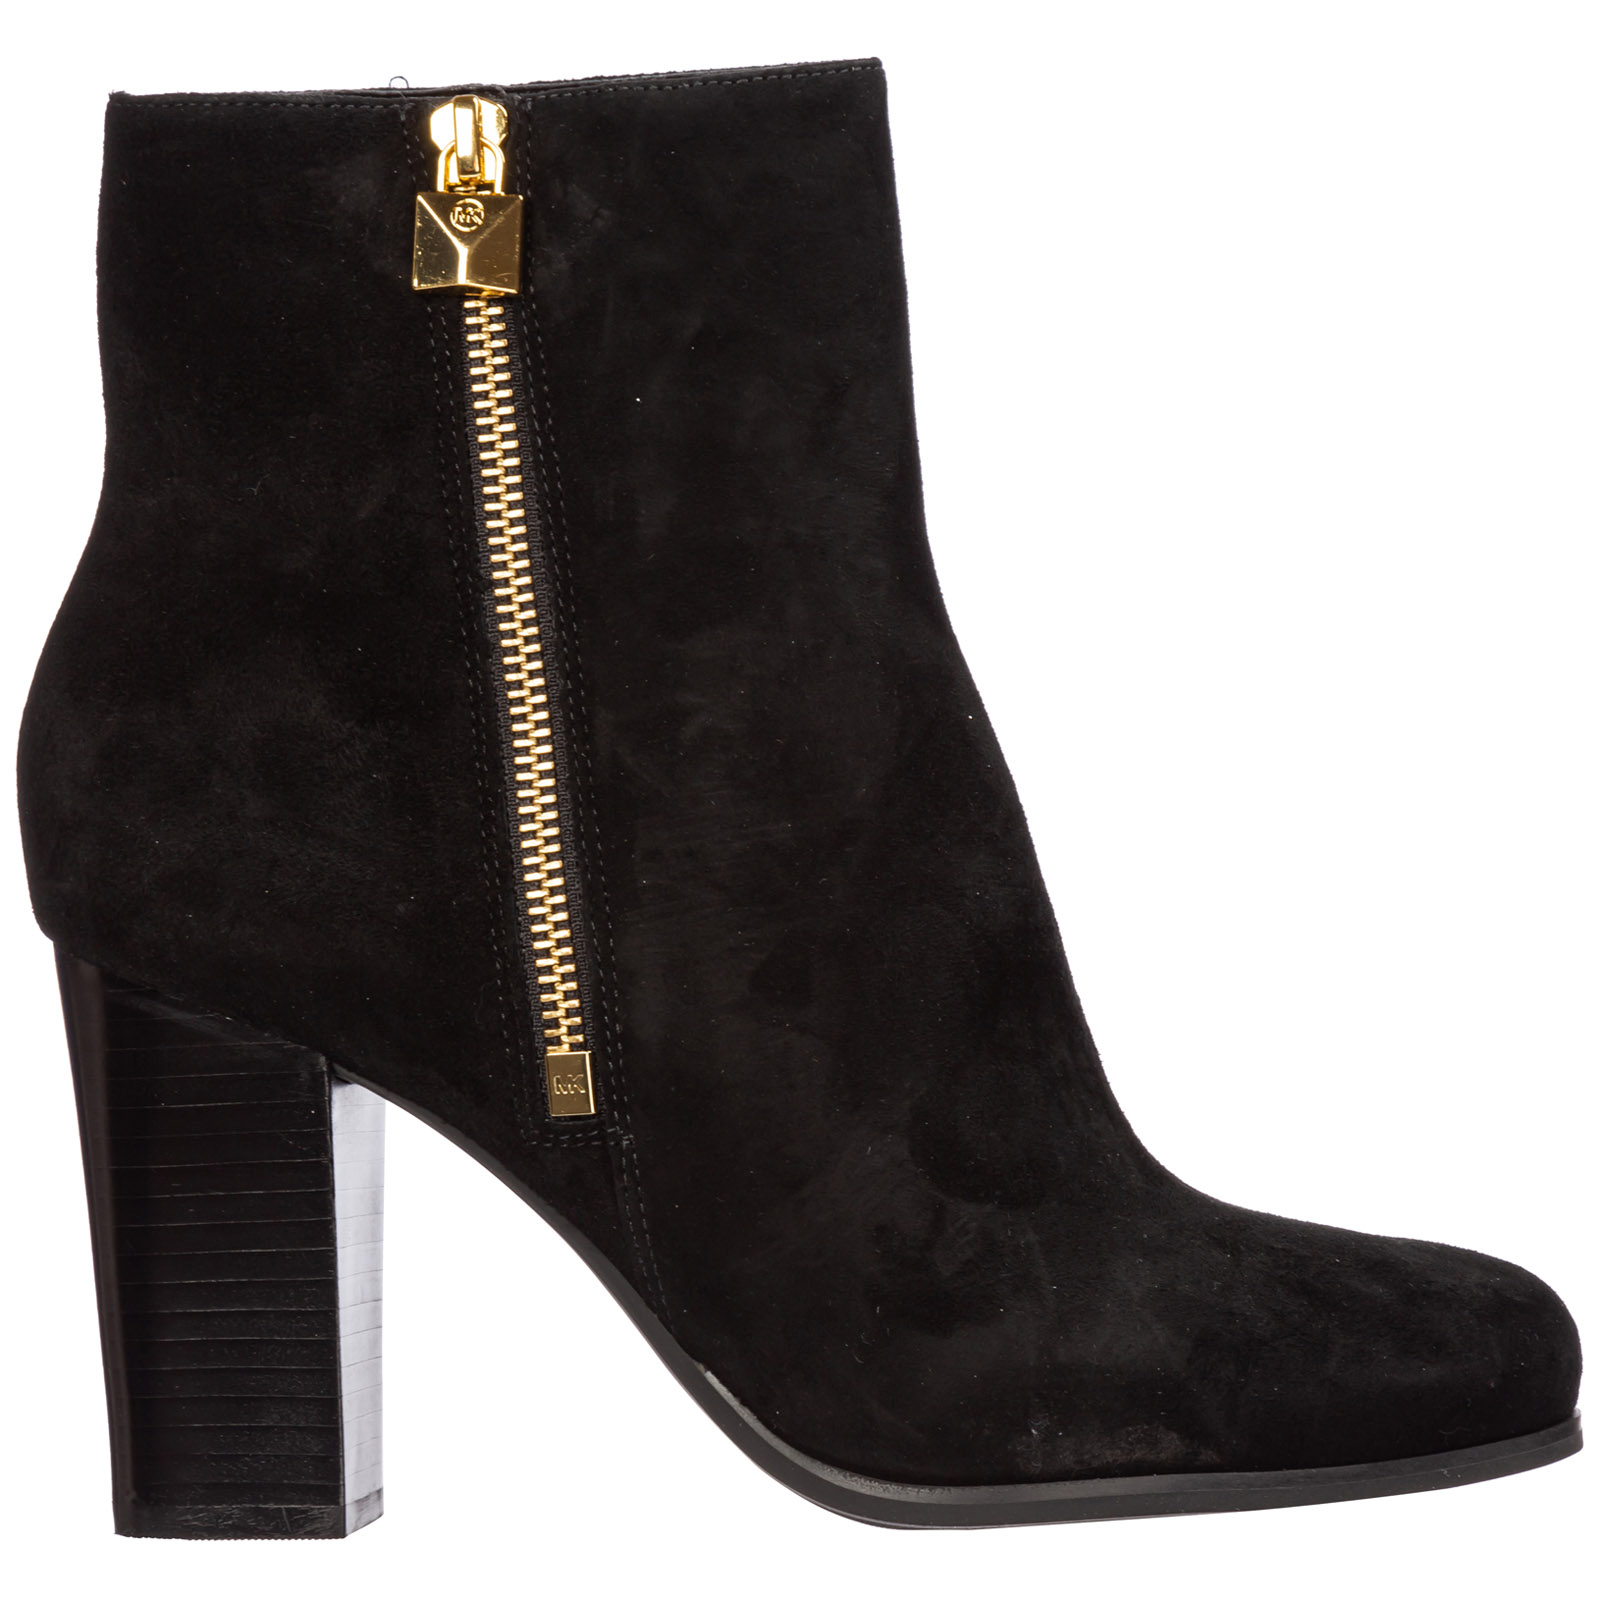 Michael Kors Boots WOMEN'S SUEDE HEEL ANKLE BOOTS BOOTIES FRENCHIE